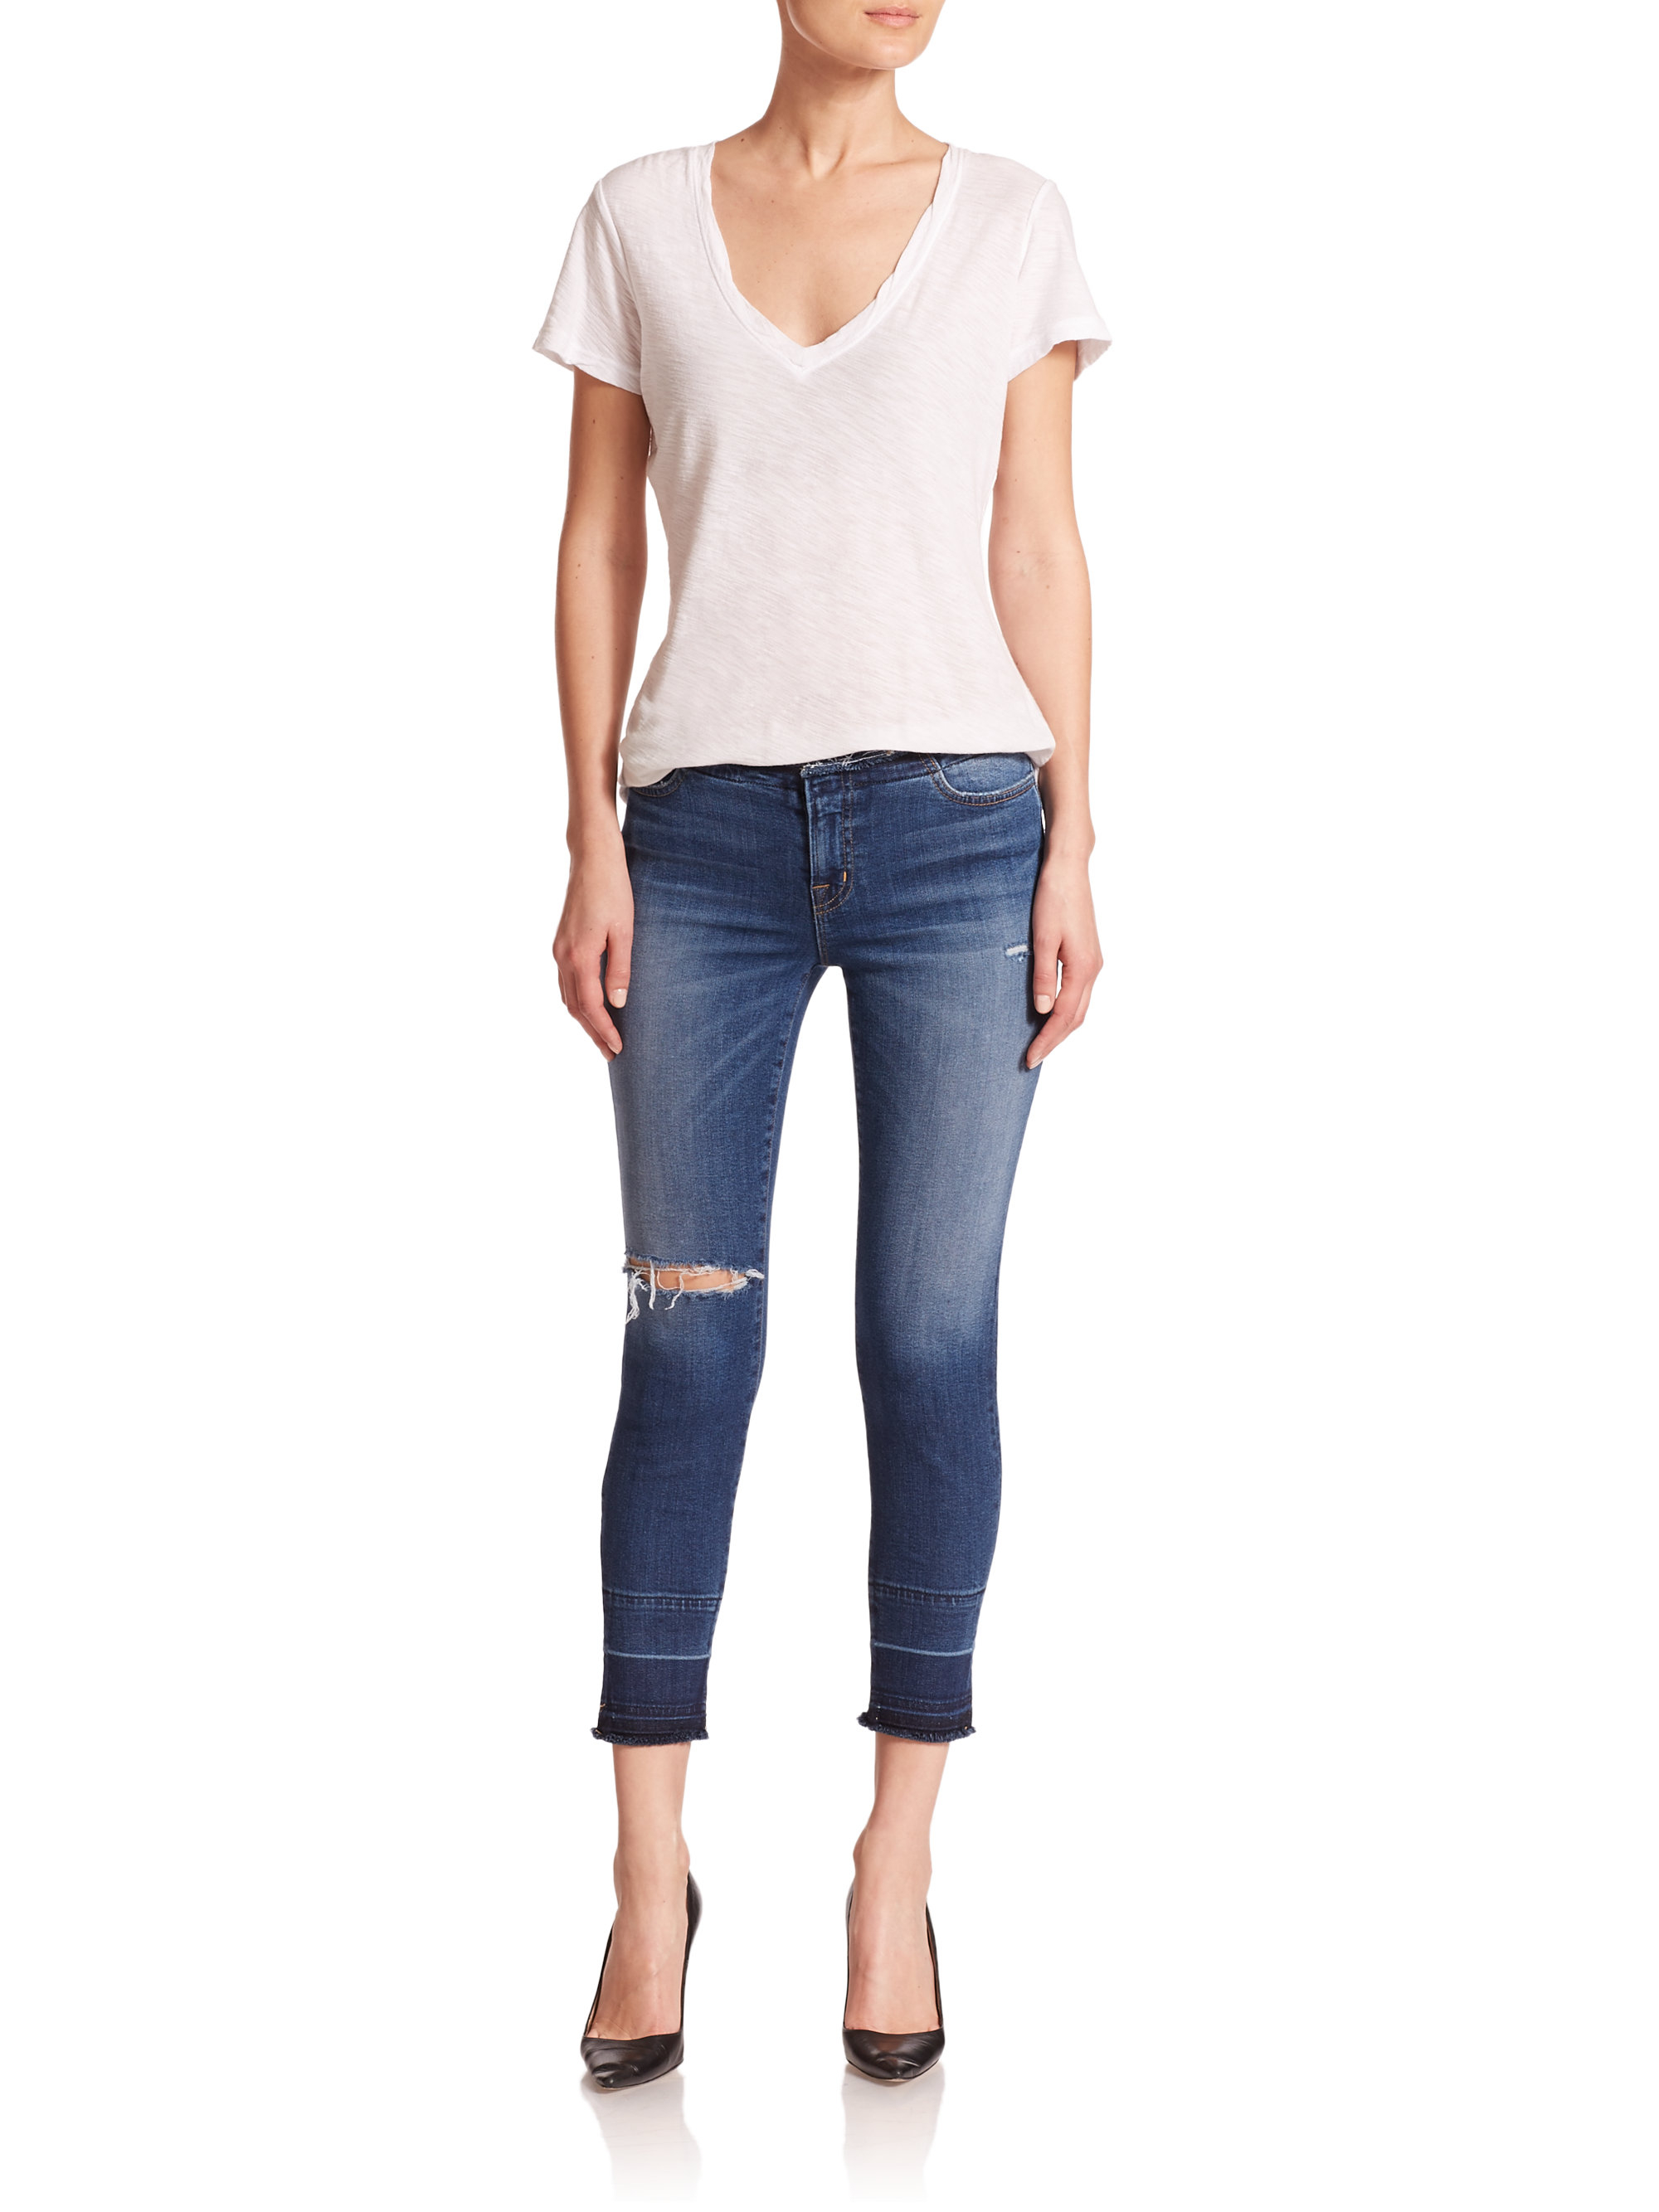 J brand 835 Mid-Rise Distressed Cropped Skinny Jeans in Blue   Lyst